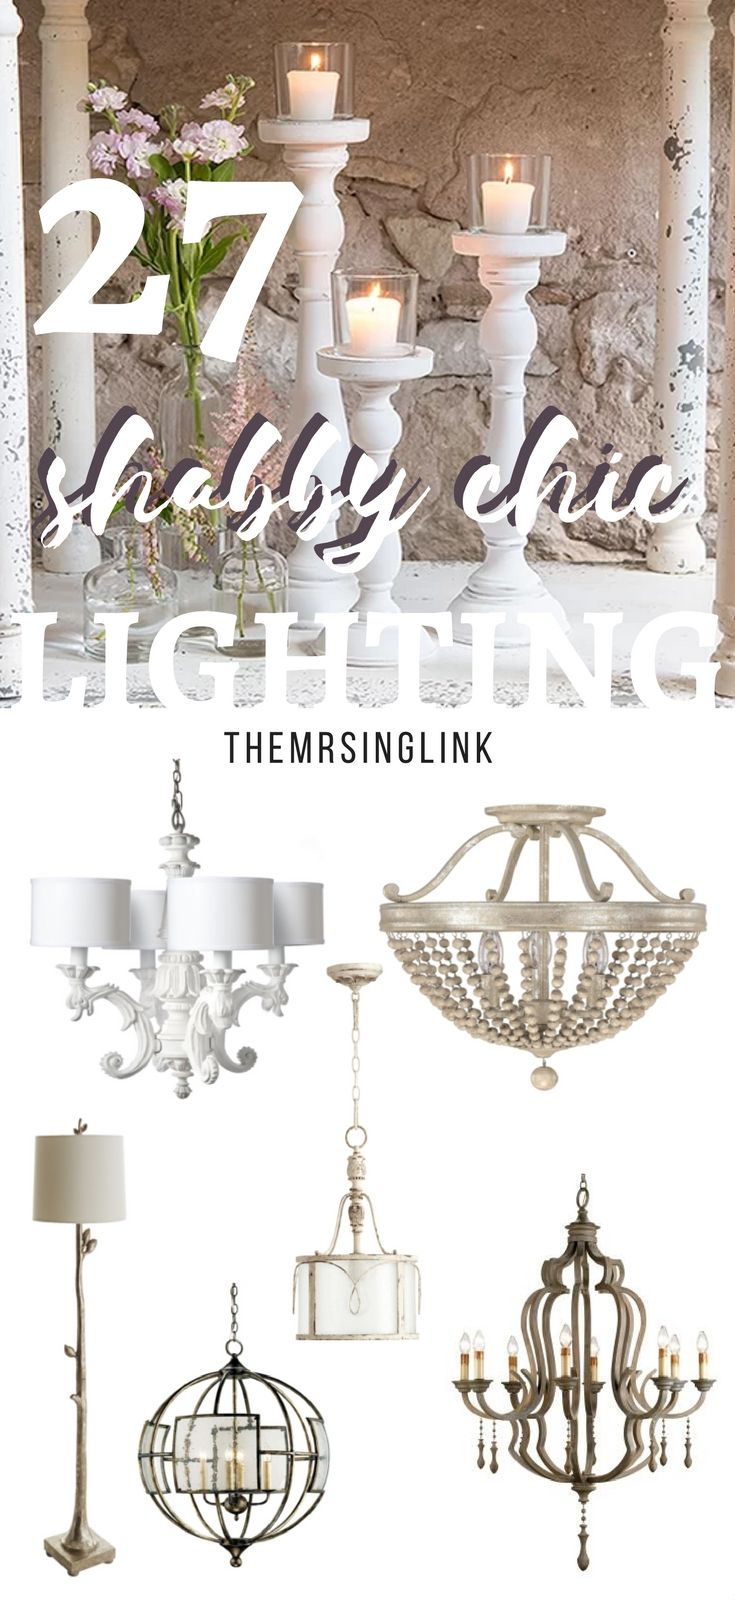 Shabby Chic Lighting Decor To Brighten Your Home